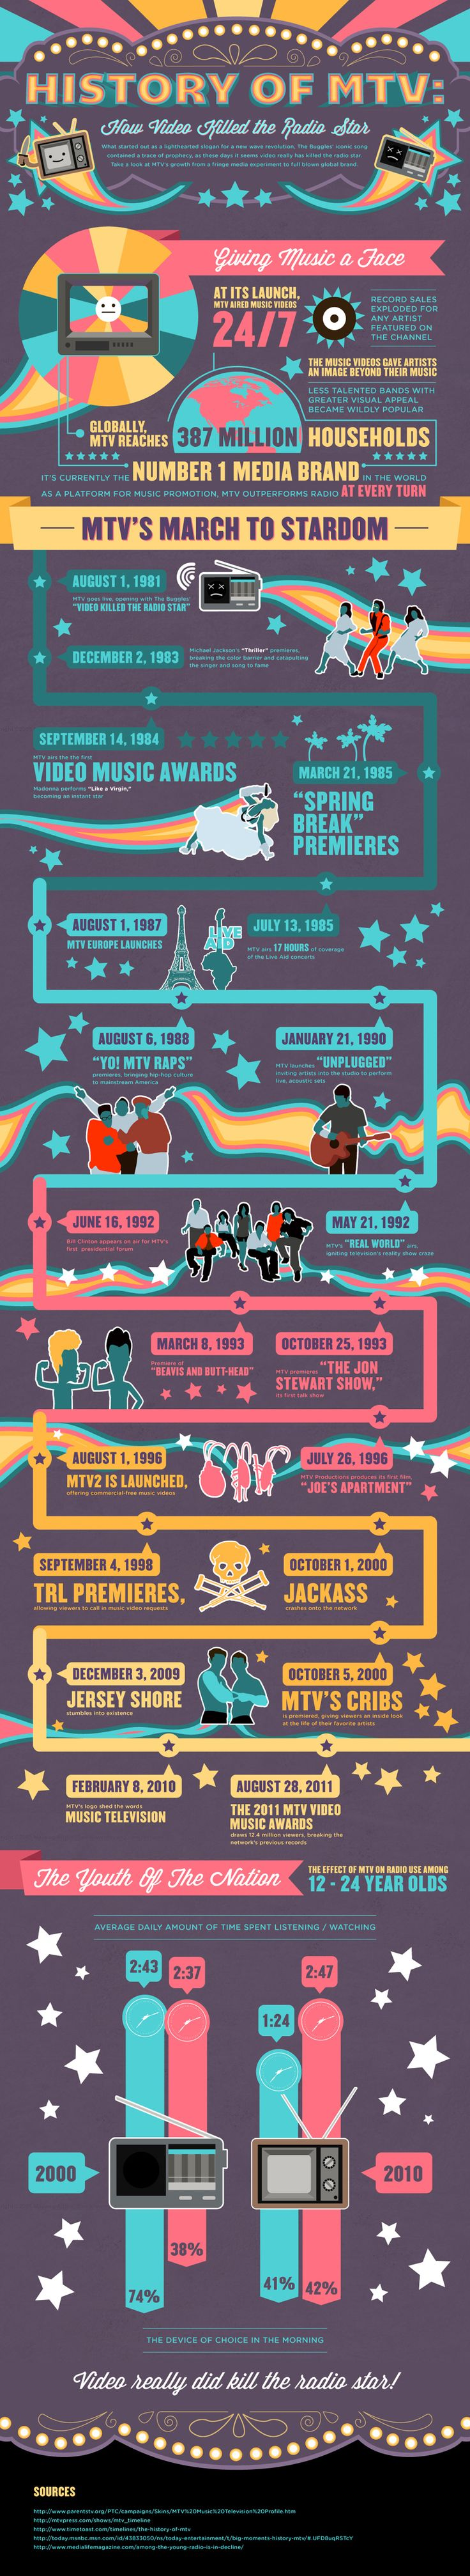 """This vertical timeline visualization covers not only the """"History of MTV"""" but also the impact on the audiences of TV against radio in the past decade. Follow the history of MTV from The Buggles to these """"Reality Shows Killed My MTV"""" days."""